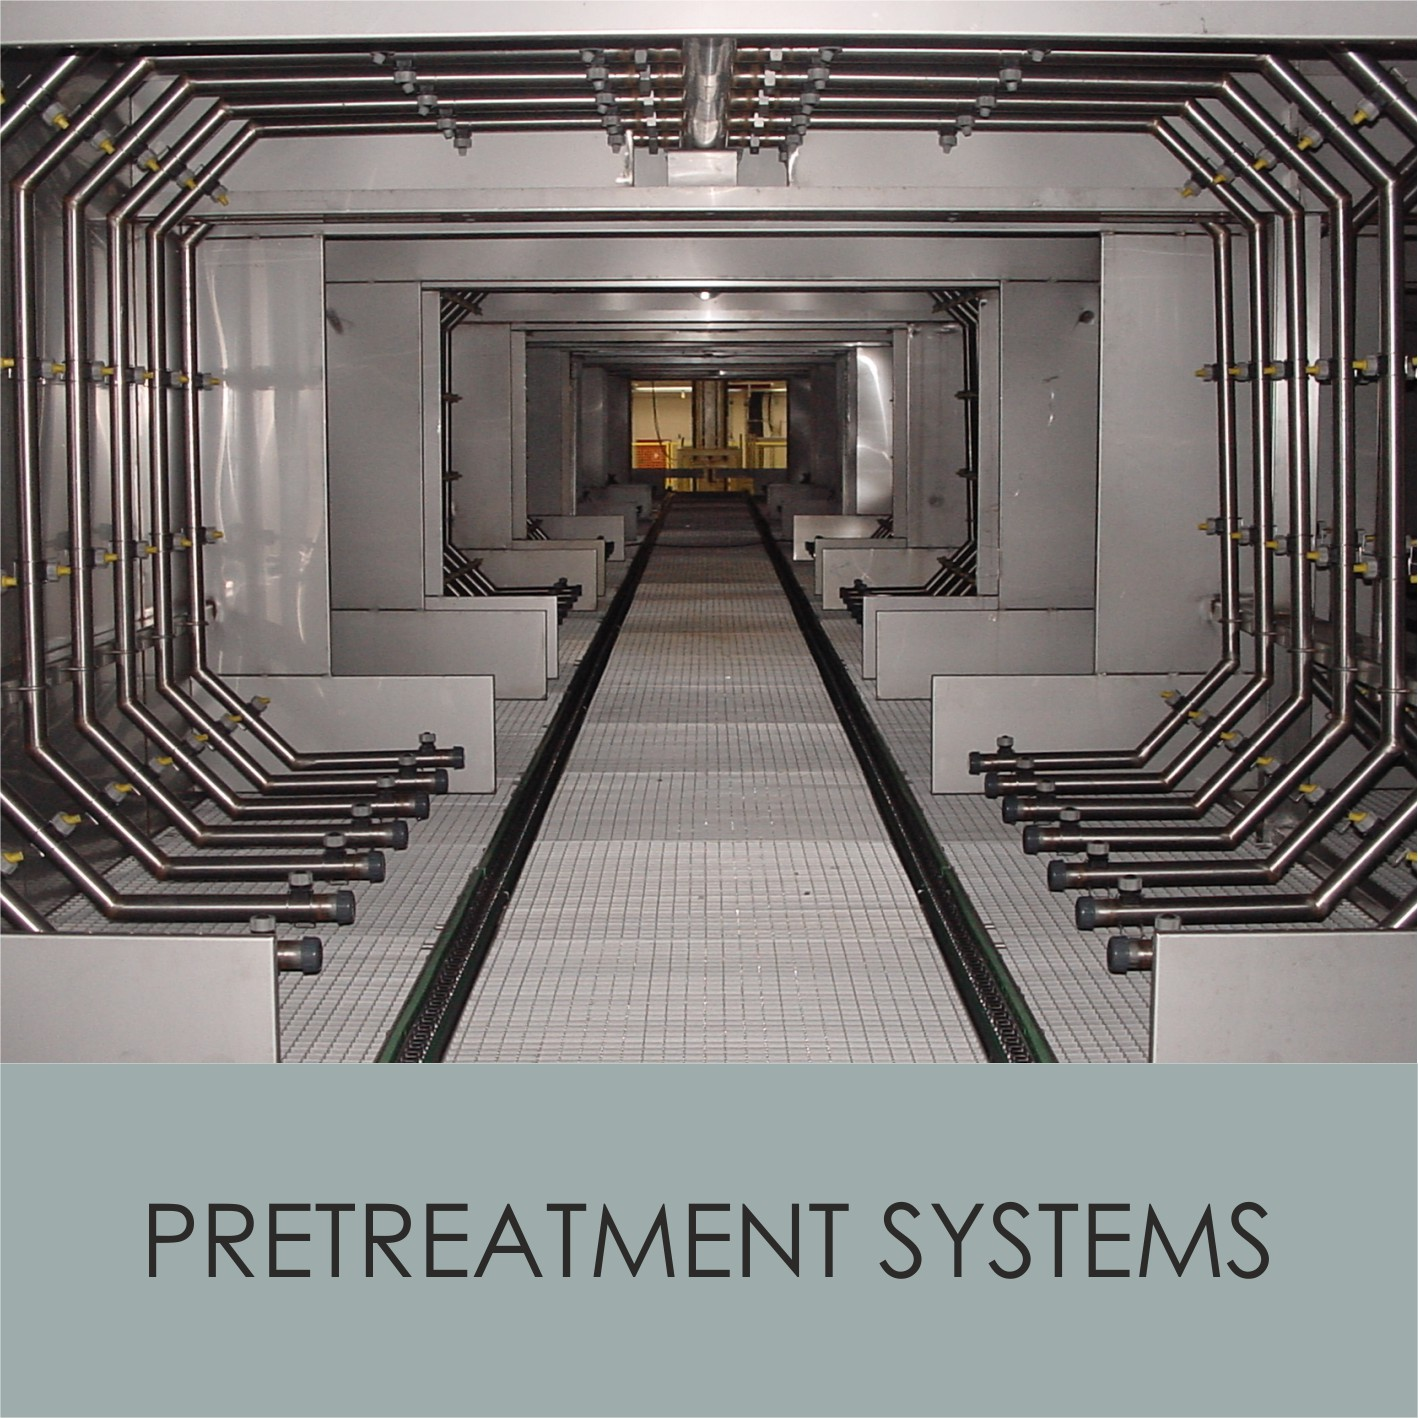 Preatreatment systems